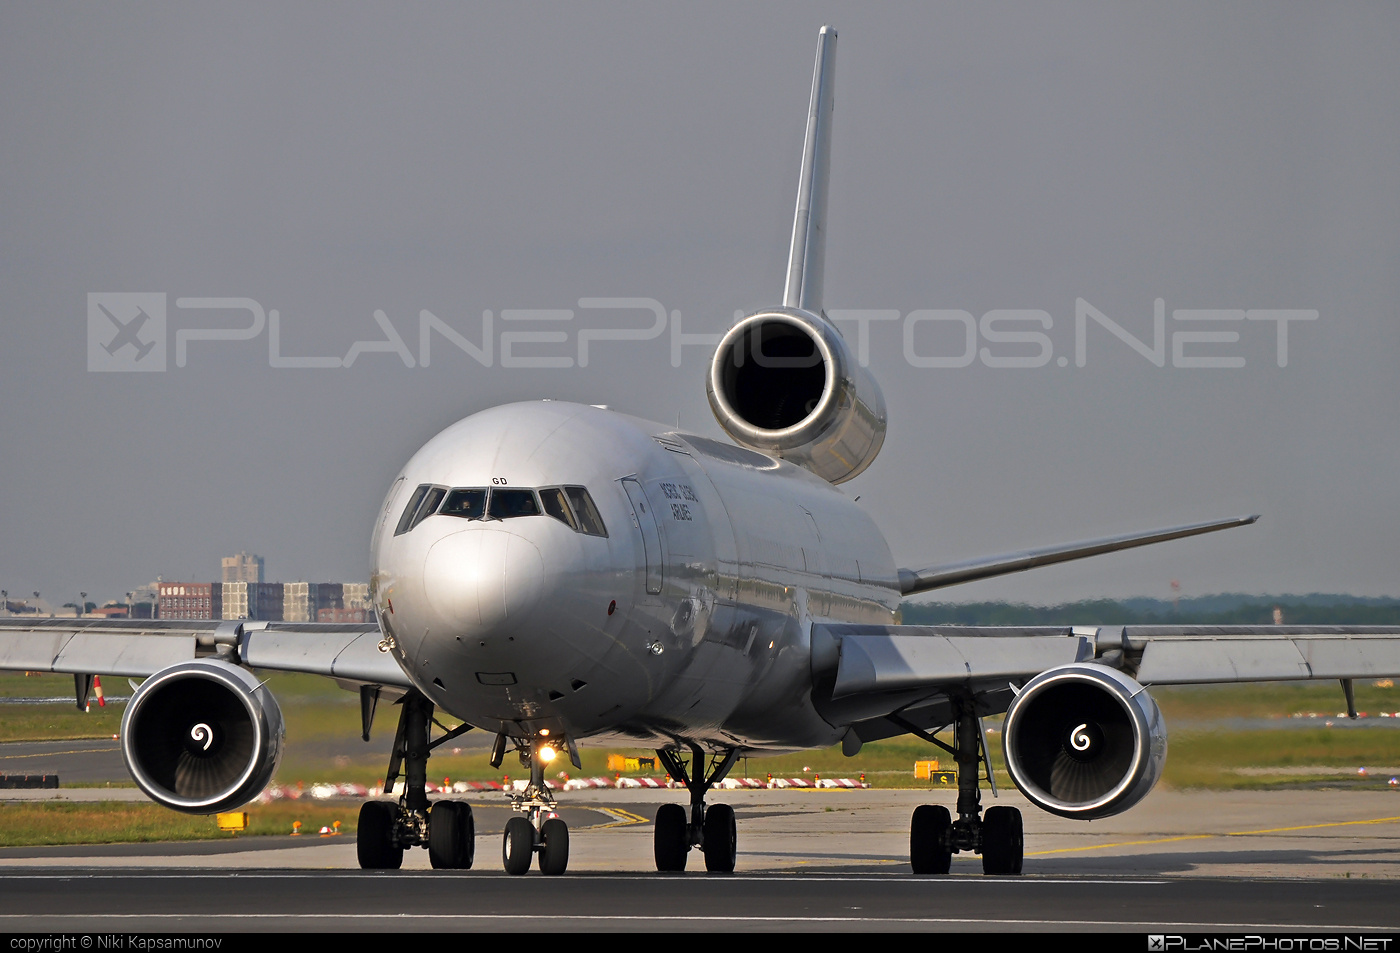 McDonnell Douglas MD-11F - OH-LGD operated by Nordic Global Airlines #mcdonnelldouglas #mcdonnelldouglas11 #mcdonnelldouglas11f #mcdonnelldouglasmd11 #mcdonnelldouglasmd11f #md11 #md11f